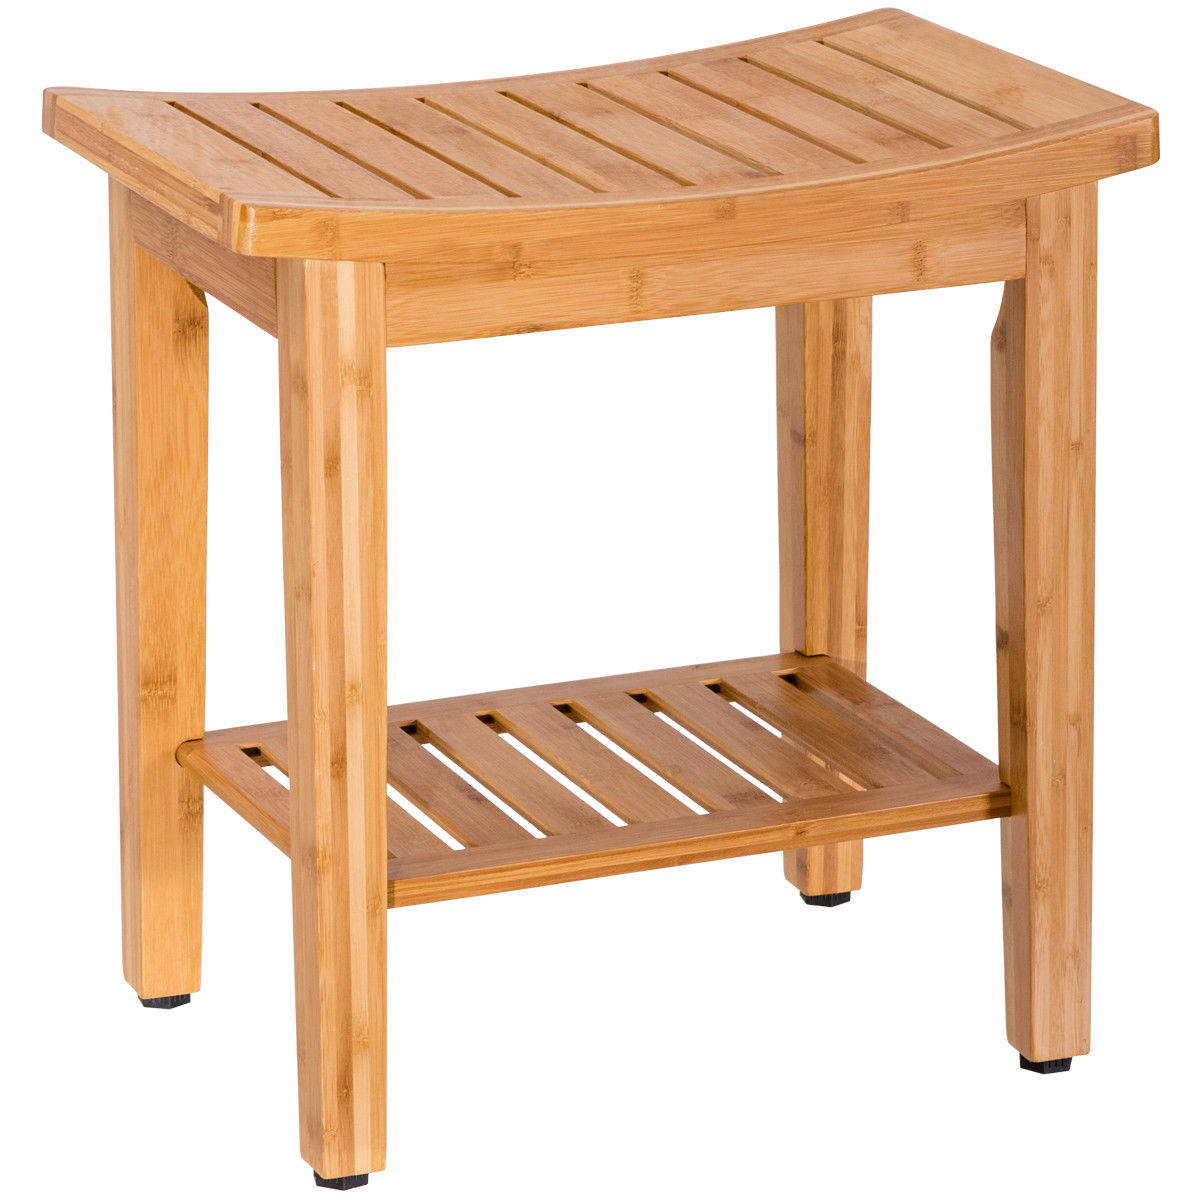 Costway 18'' Bamboo Shower Seat Bench Bathroom Spa Bath Organizer Stool w/ Storage Shelf